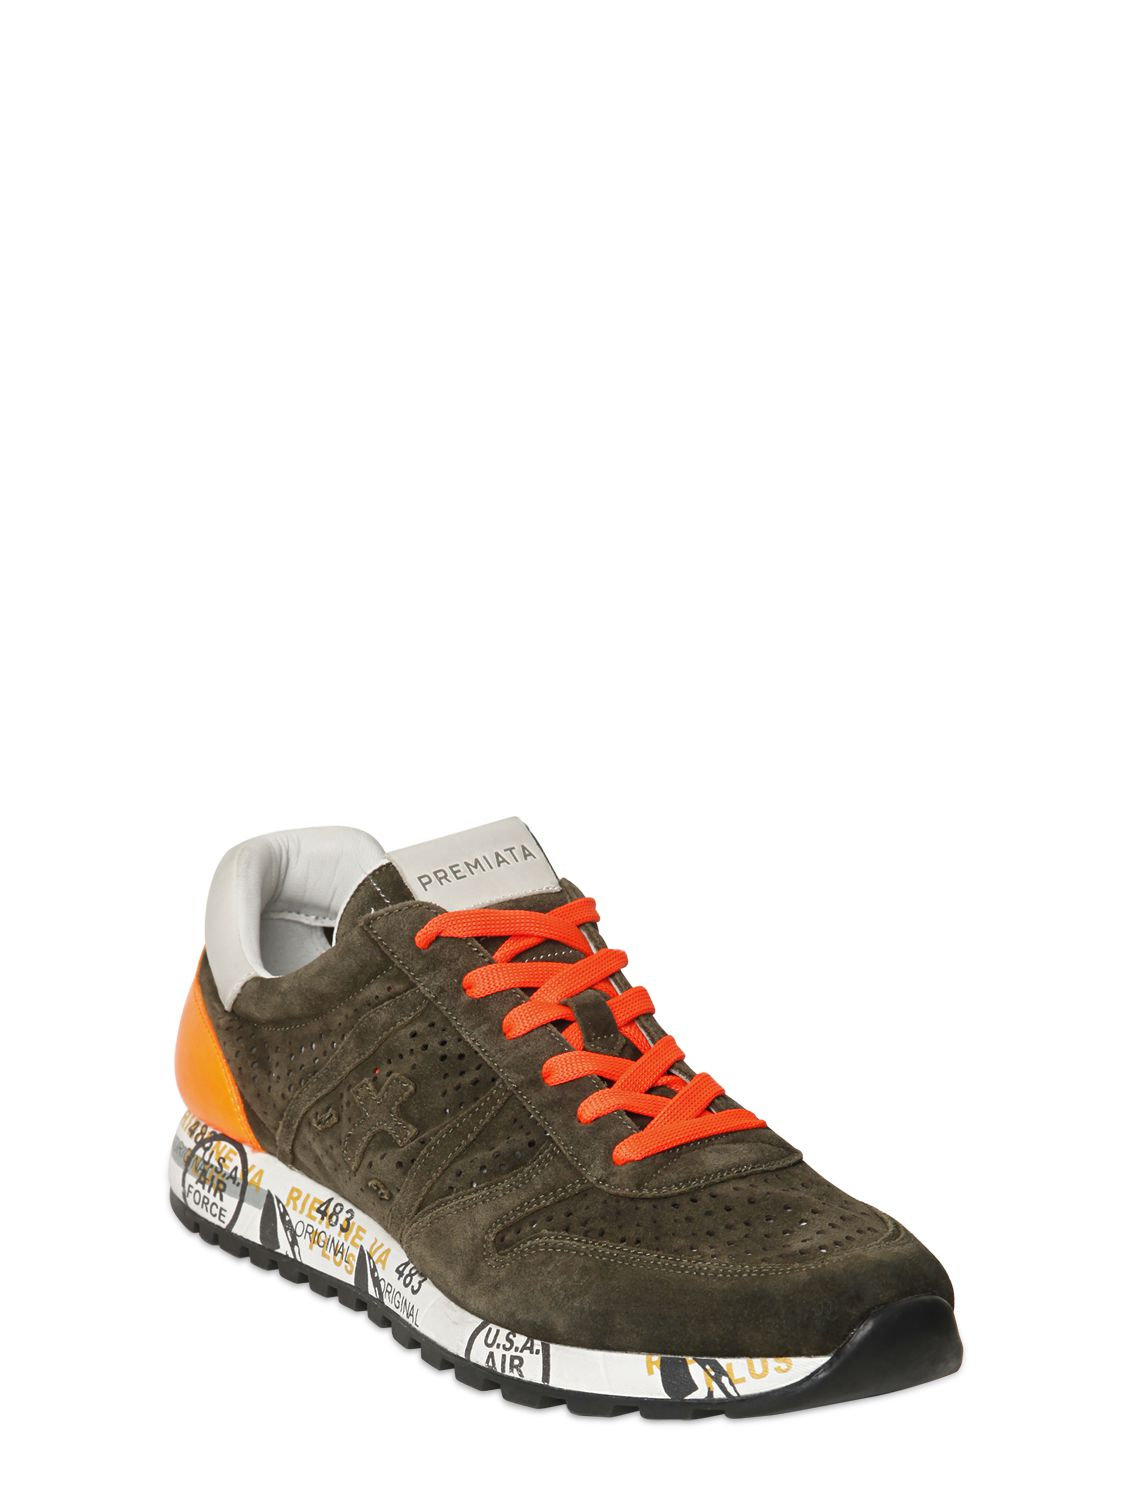 sale geniue stockist limited edition cheap price Premiata Sky sneakers best sale sale online genuine cheap online sale factory outlet ceEOOO9F